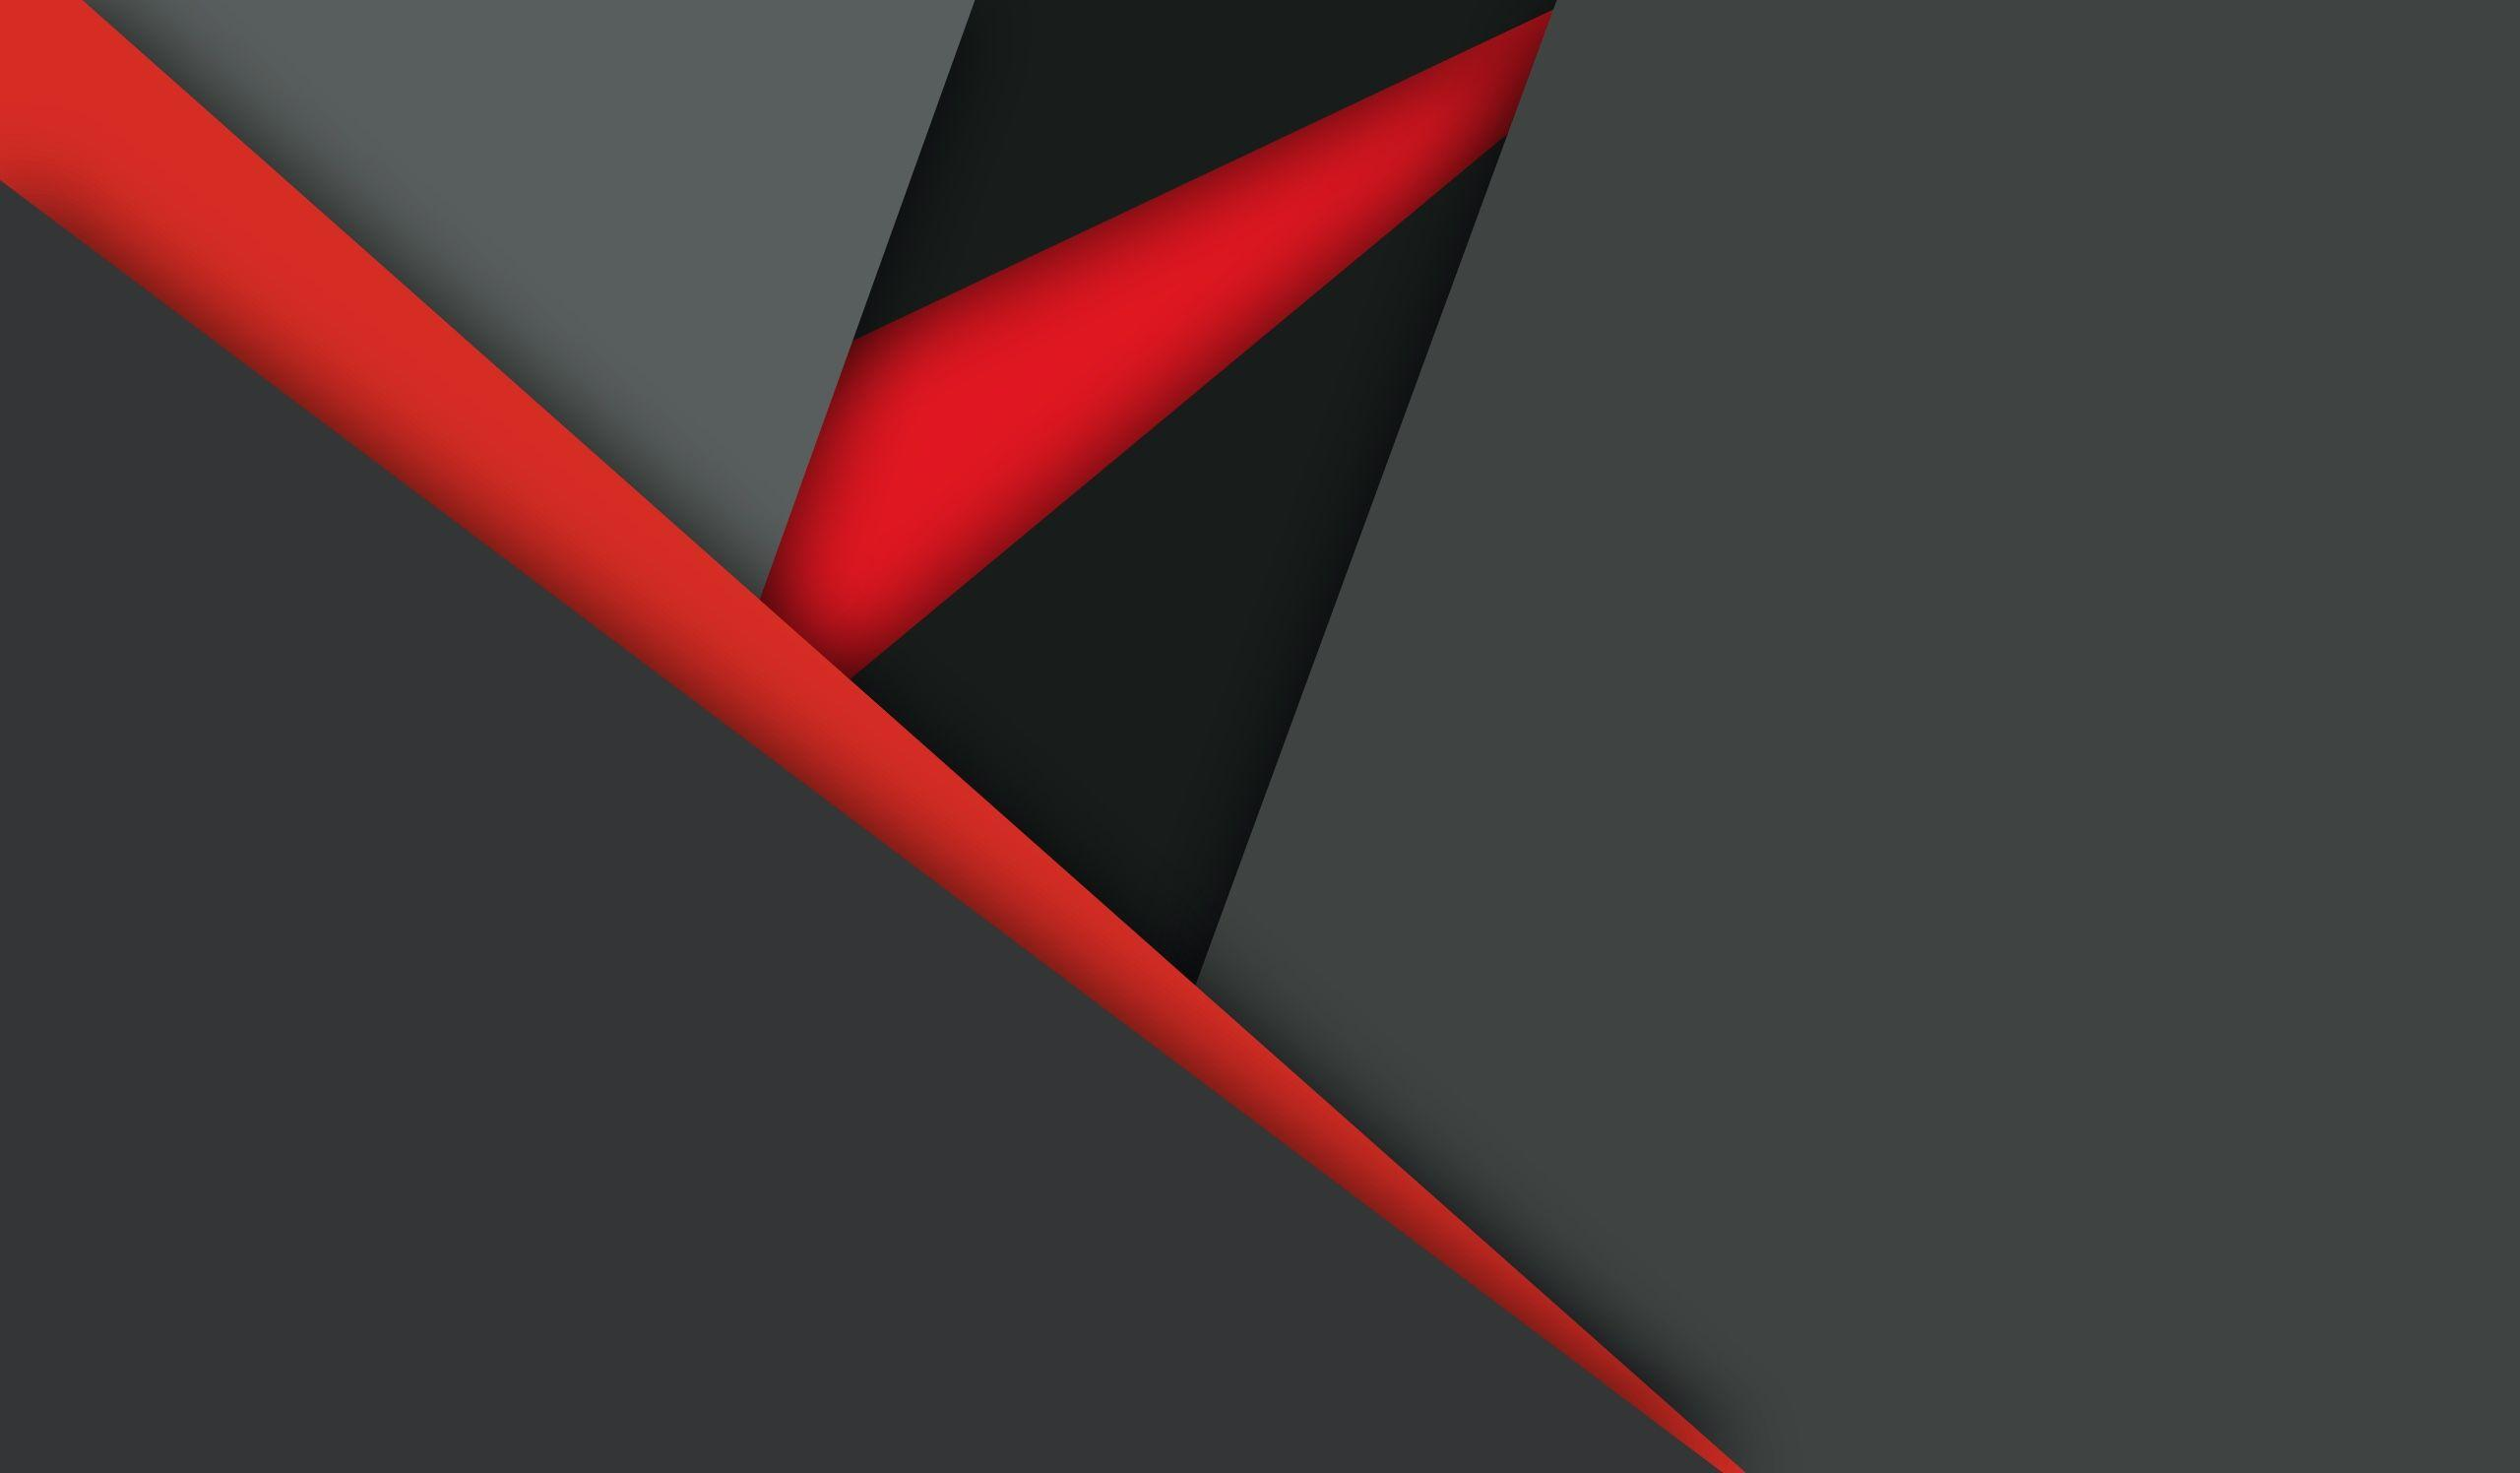 Material Design Dark Red Black, HD Abstract, 4k Wallpapers, Image